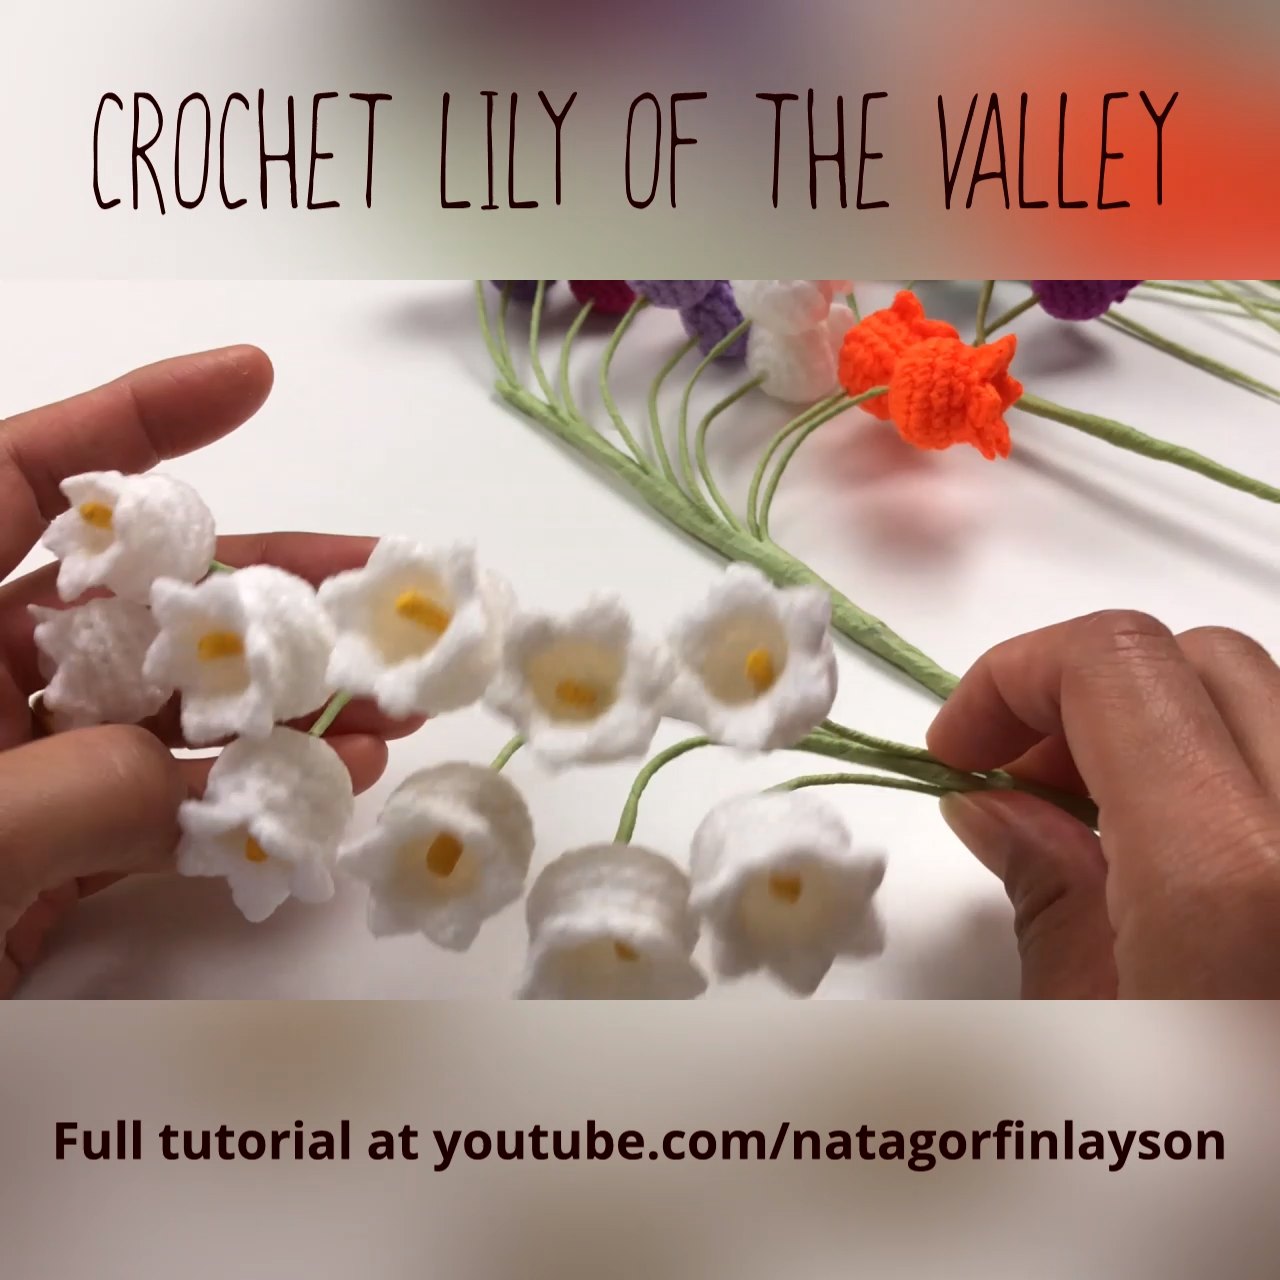 In this video I show you how to #crochet #Lily of the #Valley. This crochet flower is delicate and looks beautiful. You can stick to the traditional white flower or mix up different colours to add your own special twist to this crochet pattern